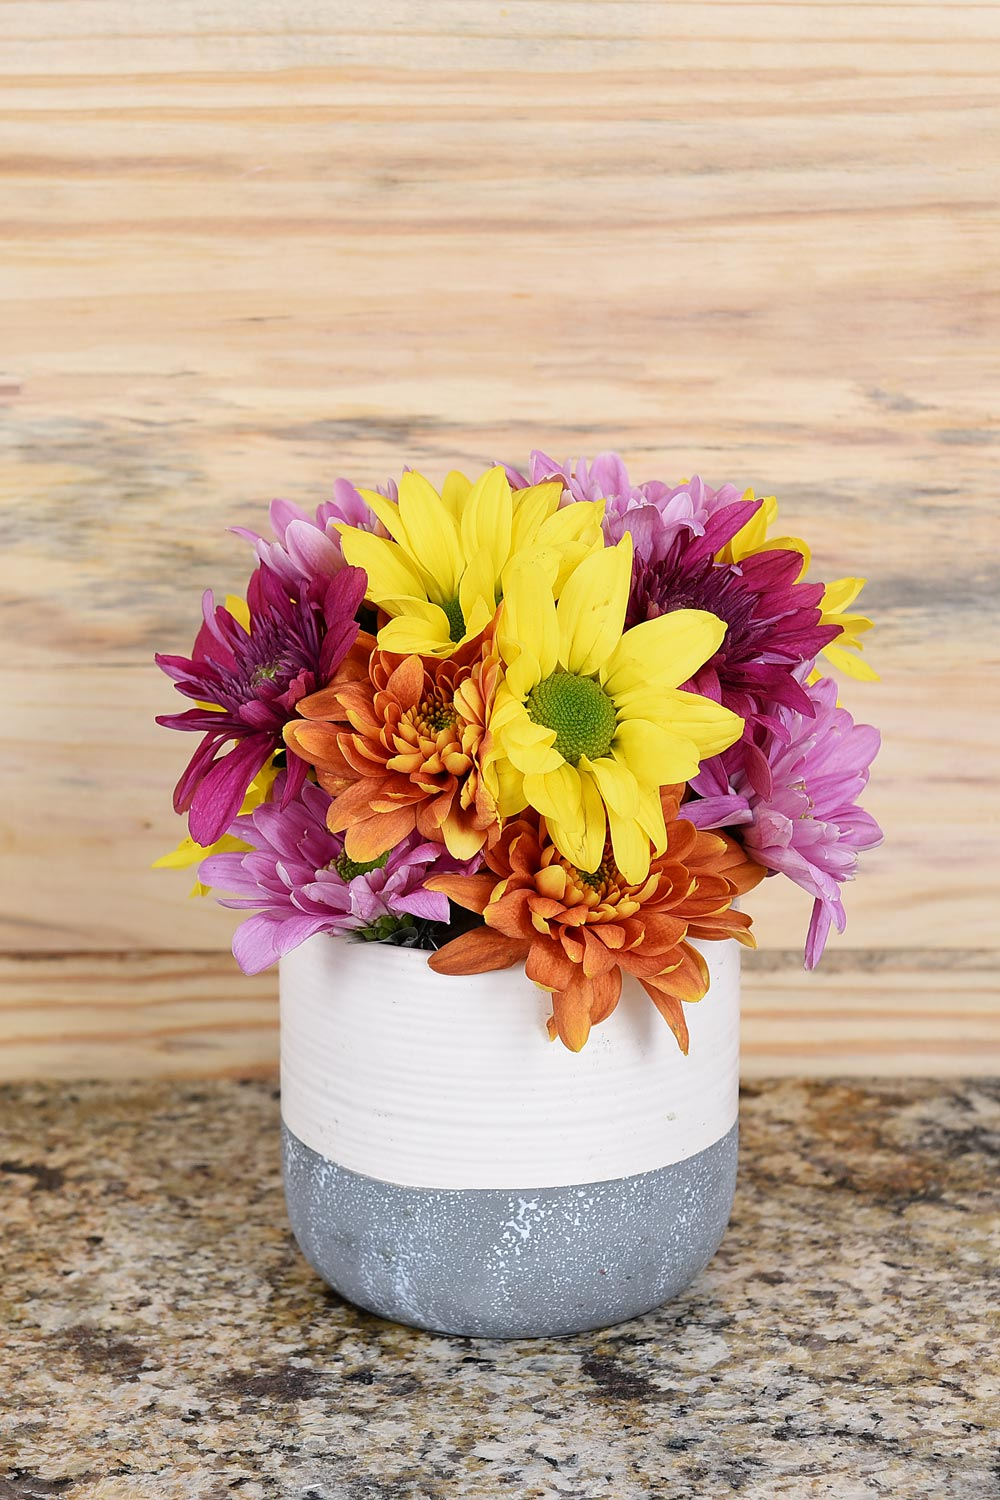 Colourful Flower Pot - Range Of Bright Flowers | Hamper World Florist